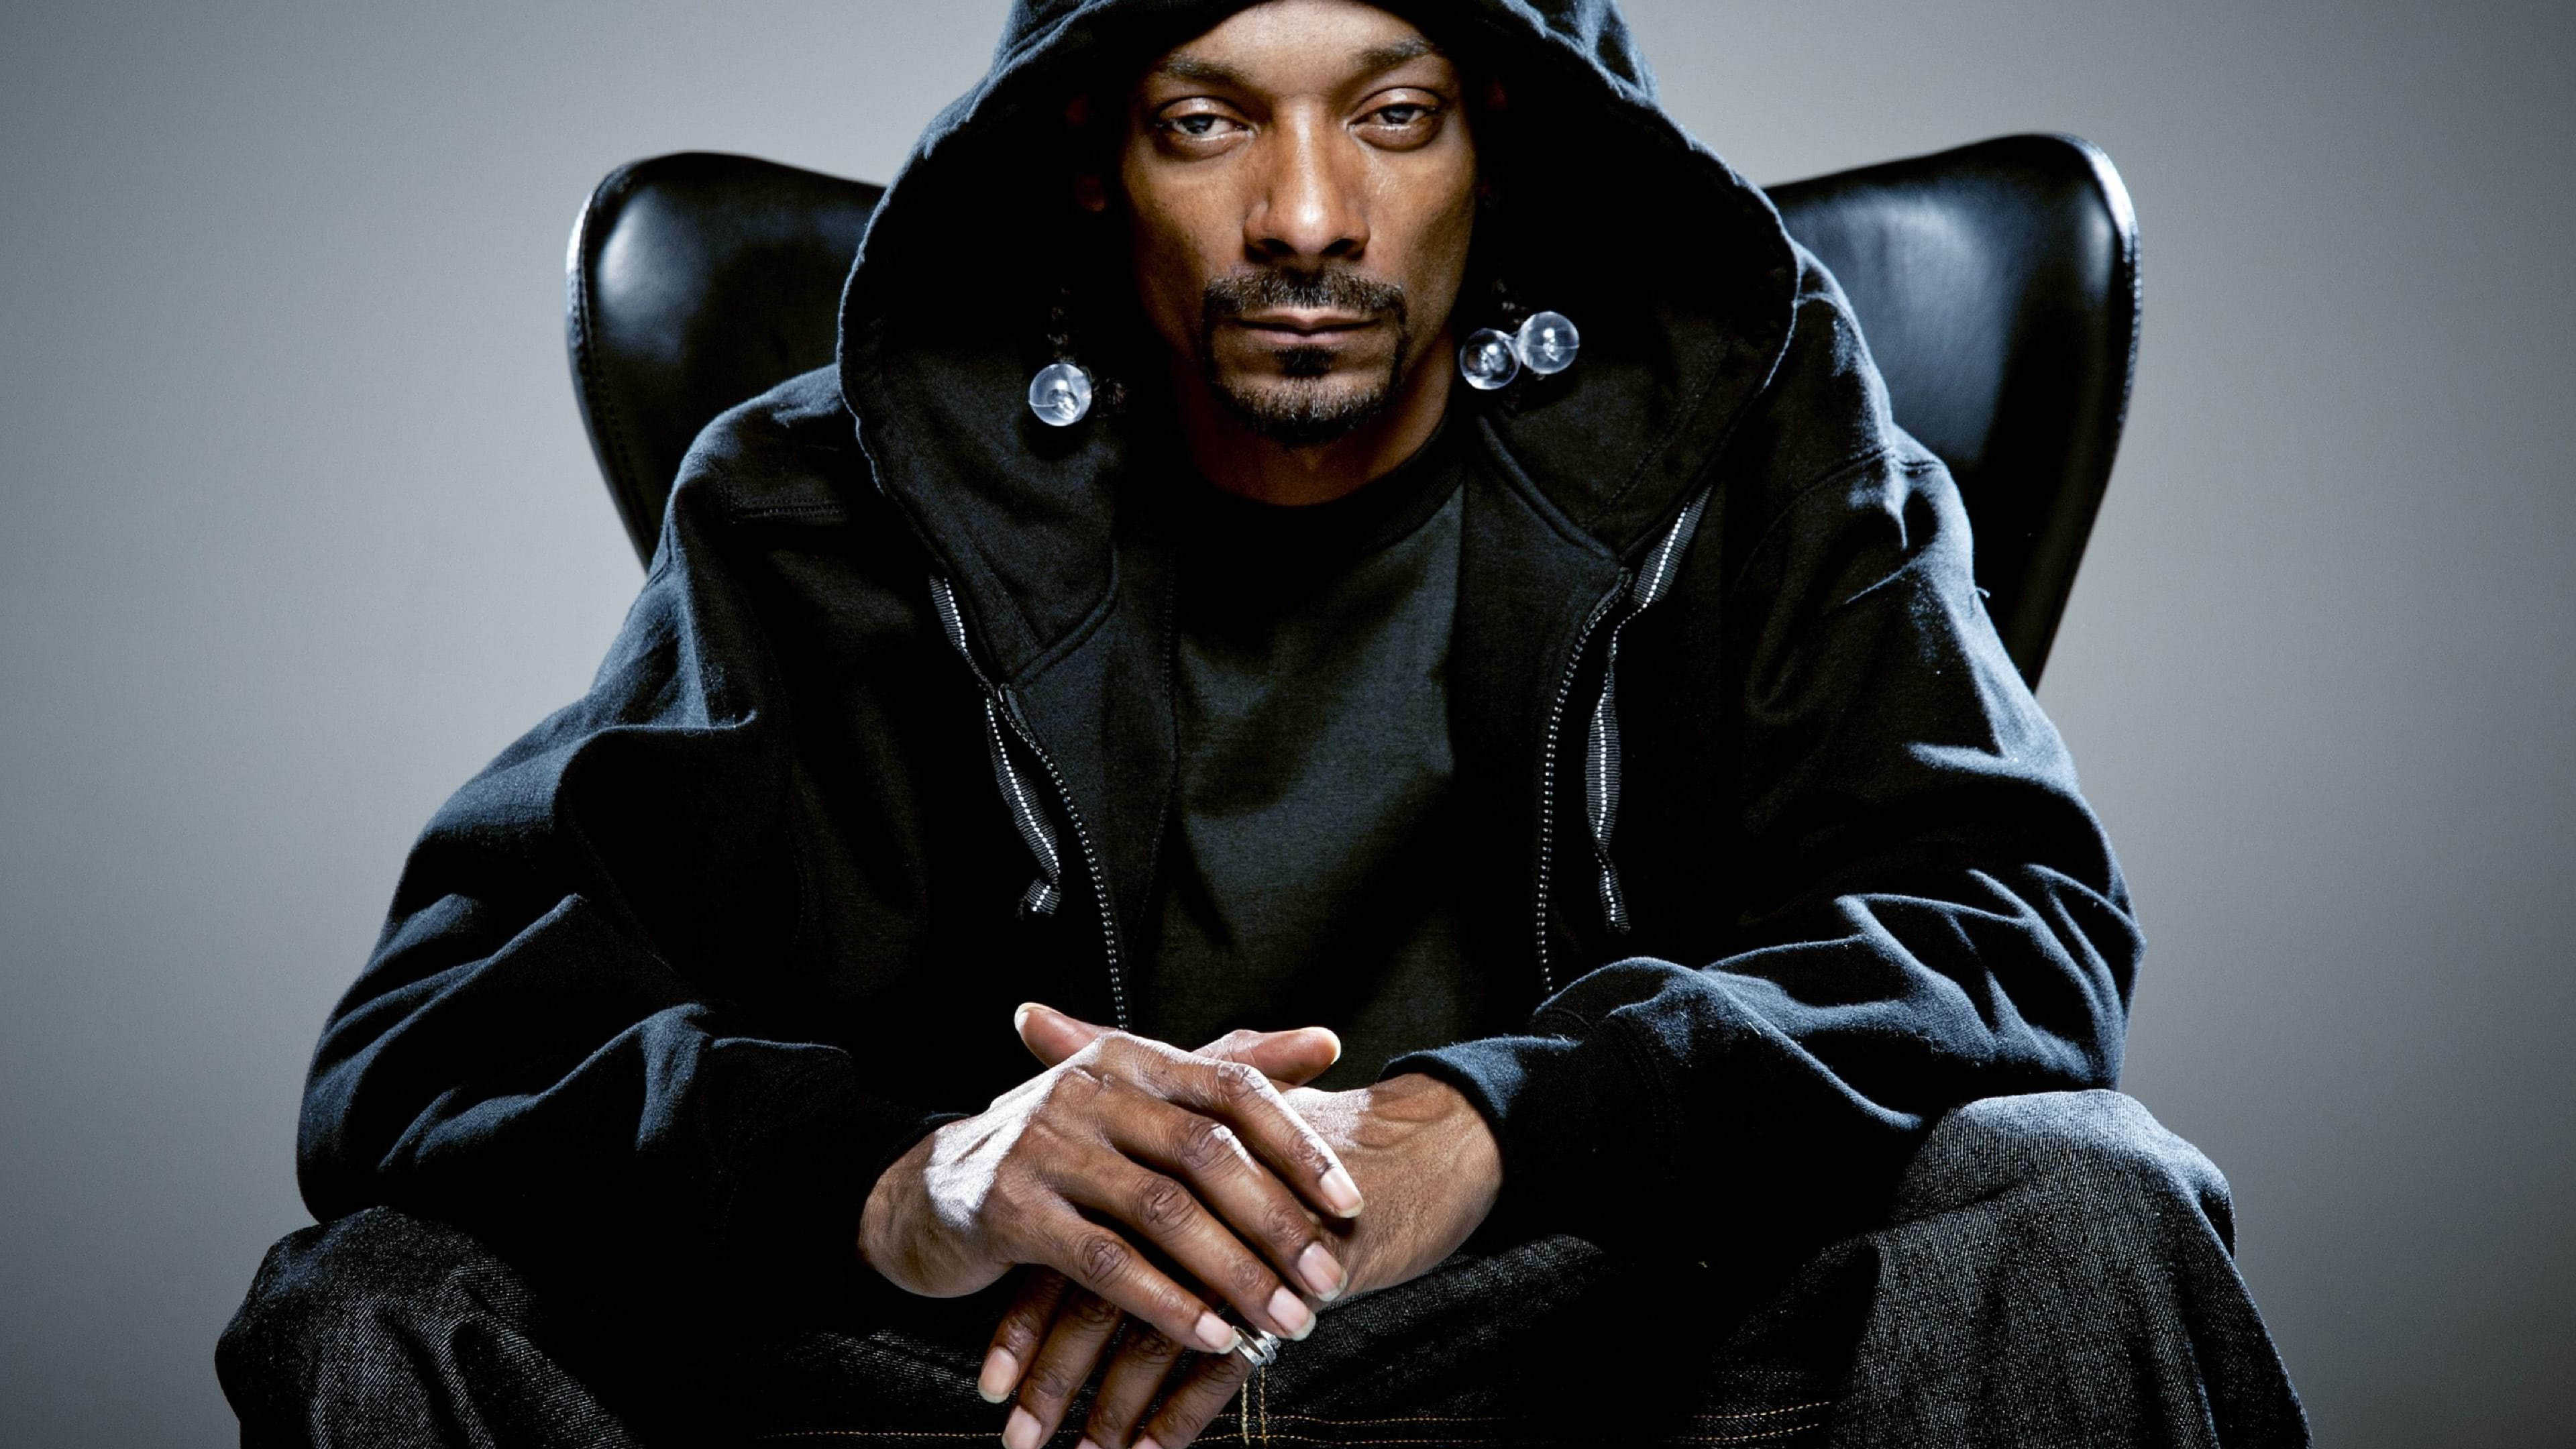 snoop dogg uhd 4k wallpaper pixelz